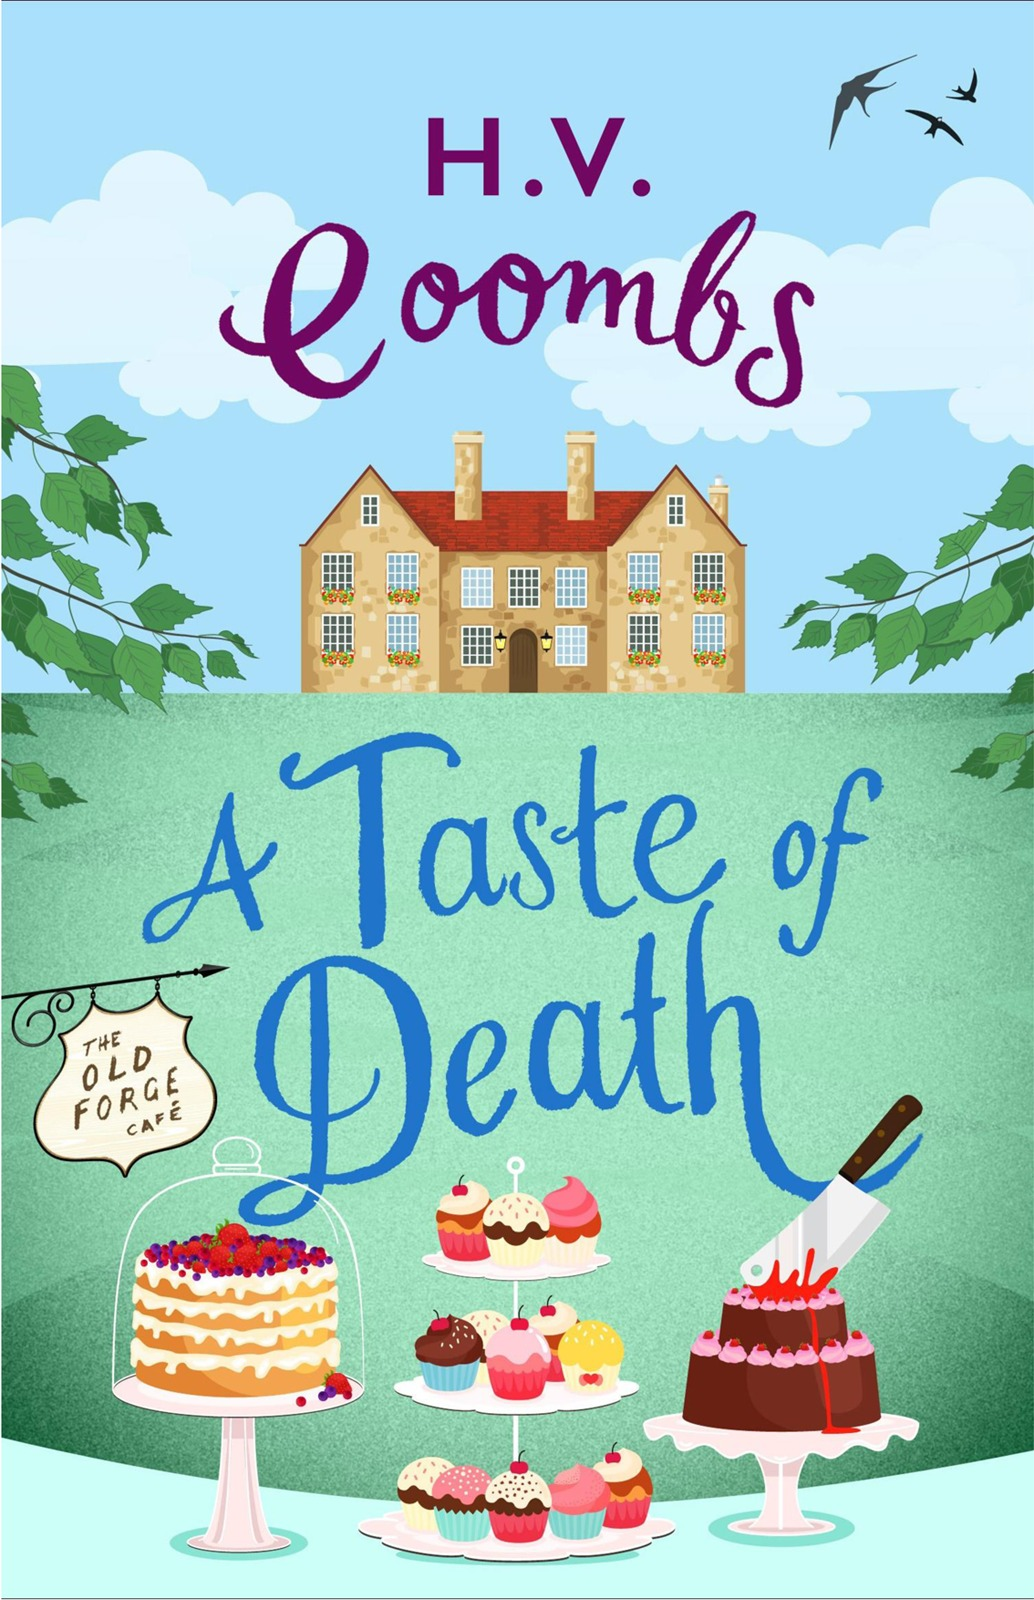 H.V. Coombs A Taste of Death: The gripping new murder mystery that will keep you guessing rob hamilton the whitechapel murder mystery